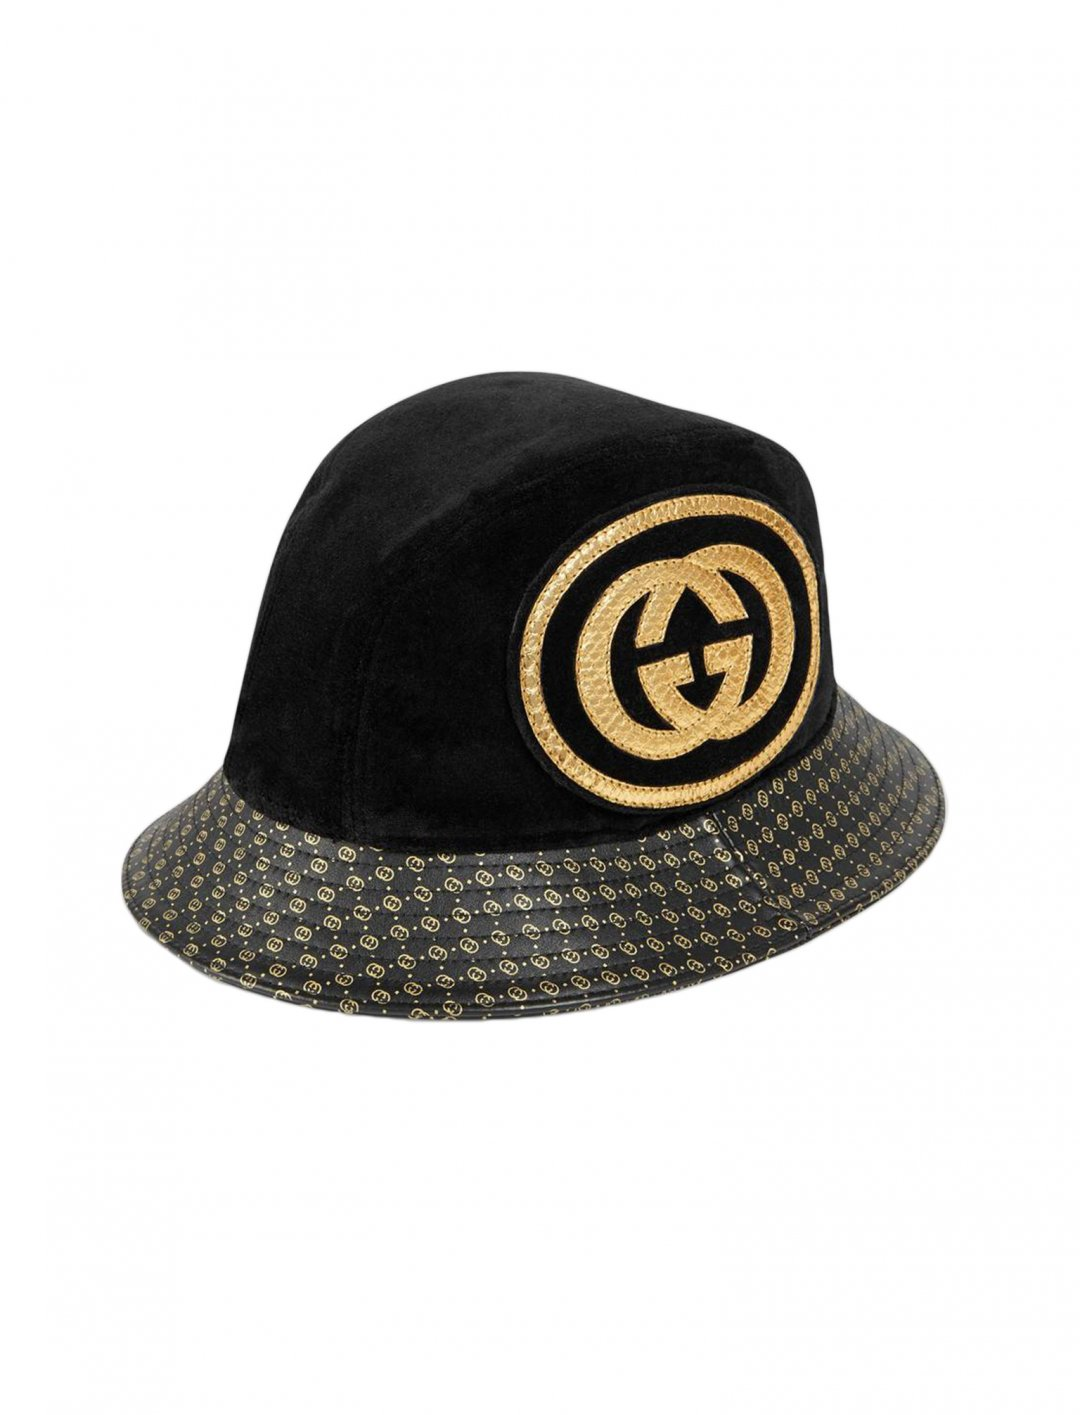 "French Montana's Leather Hat {""id"":16,""product_section_id"":1,""name"":""Accessories"",""order"":15} Gucci-Dapper Dan"